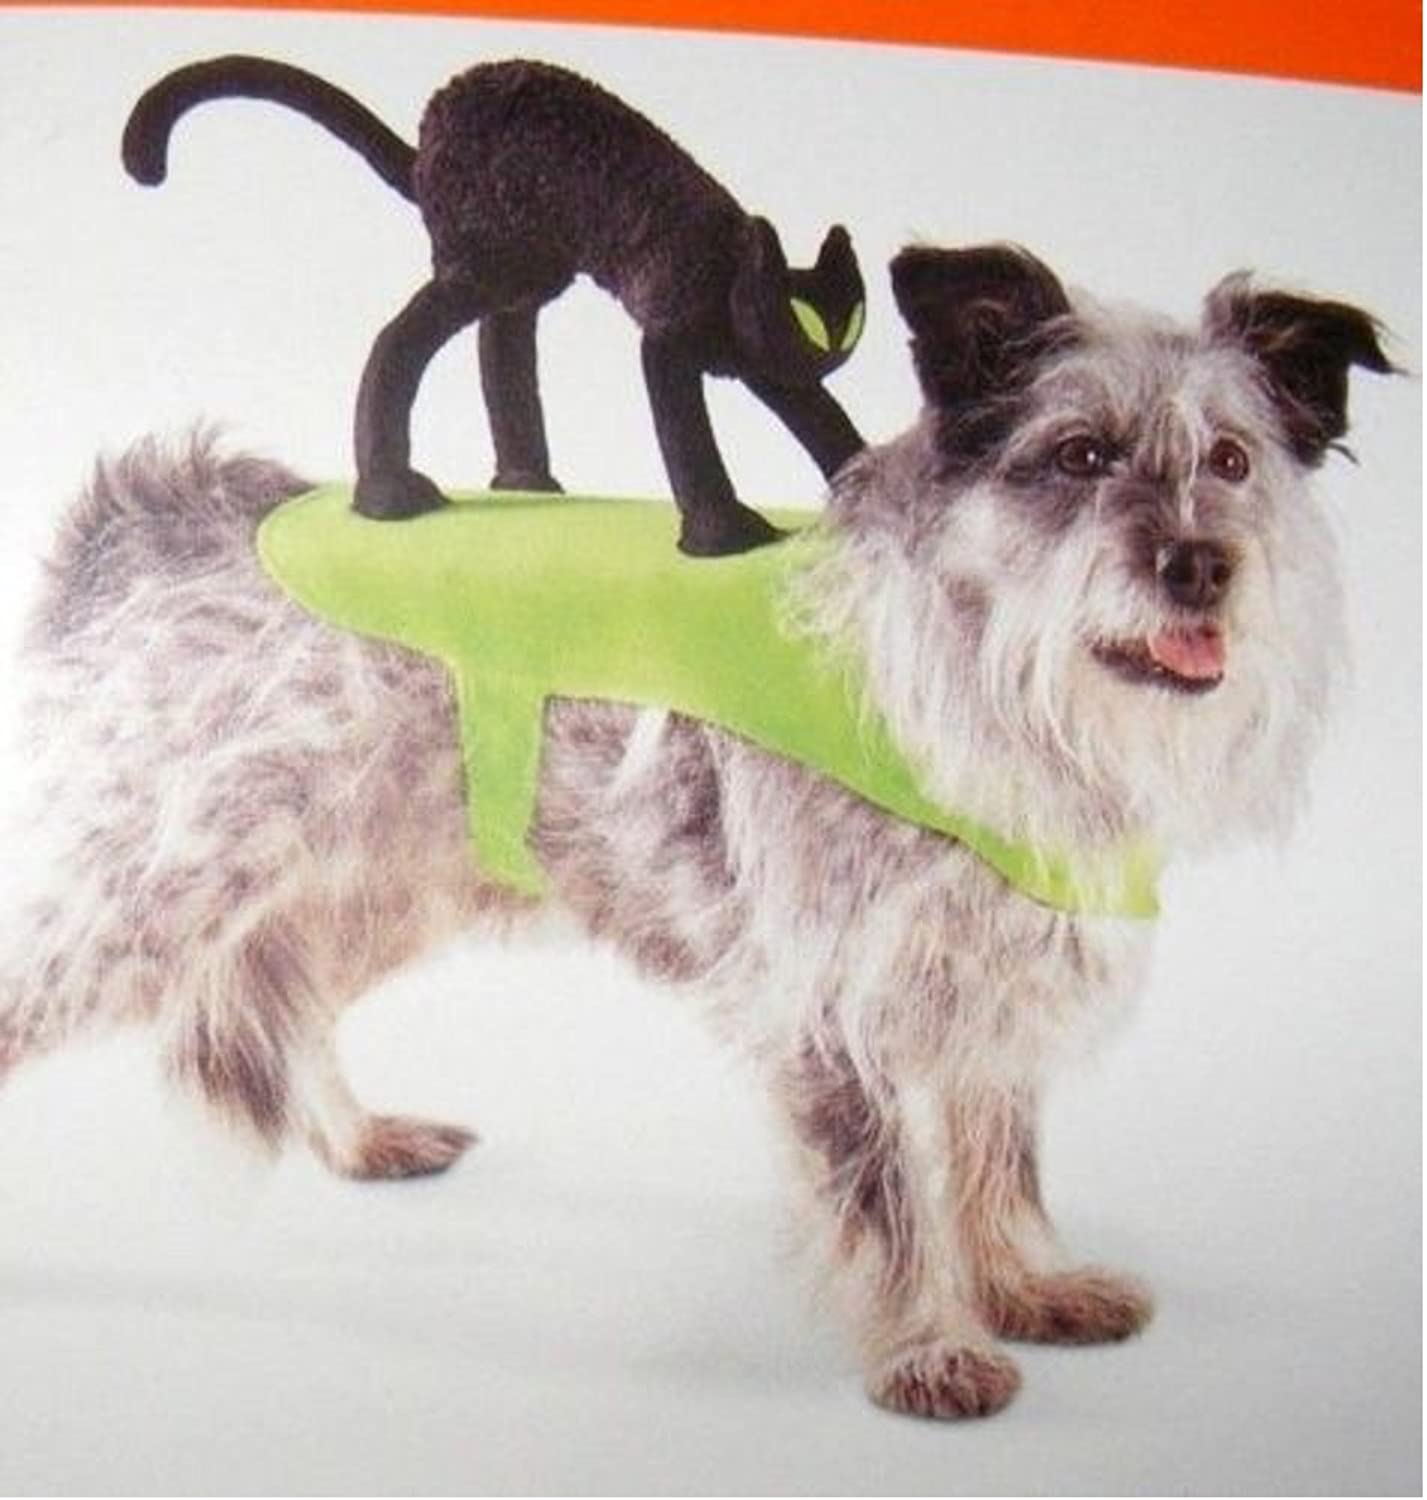 Black Cat Pet Halloween Costume For S M Dogs Up To 50 Pounds